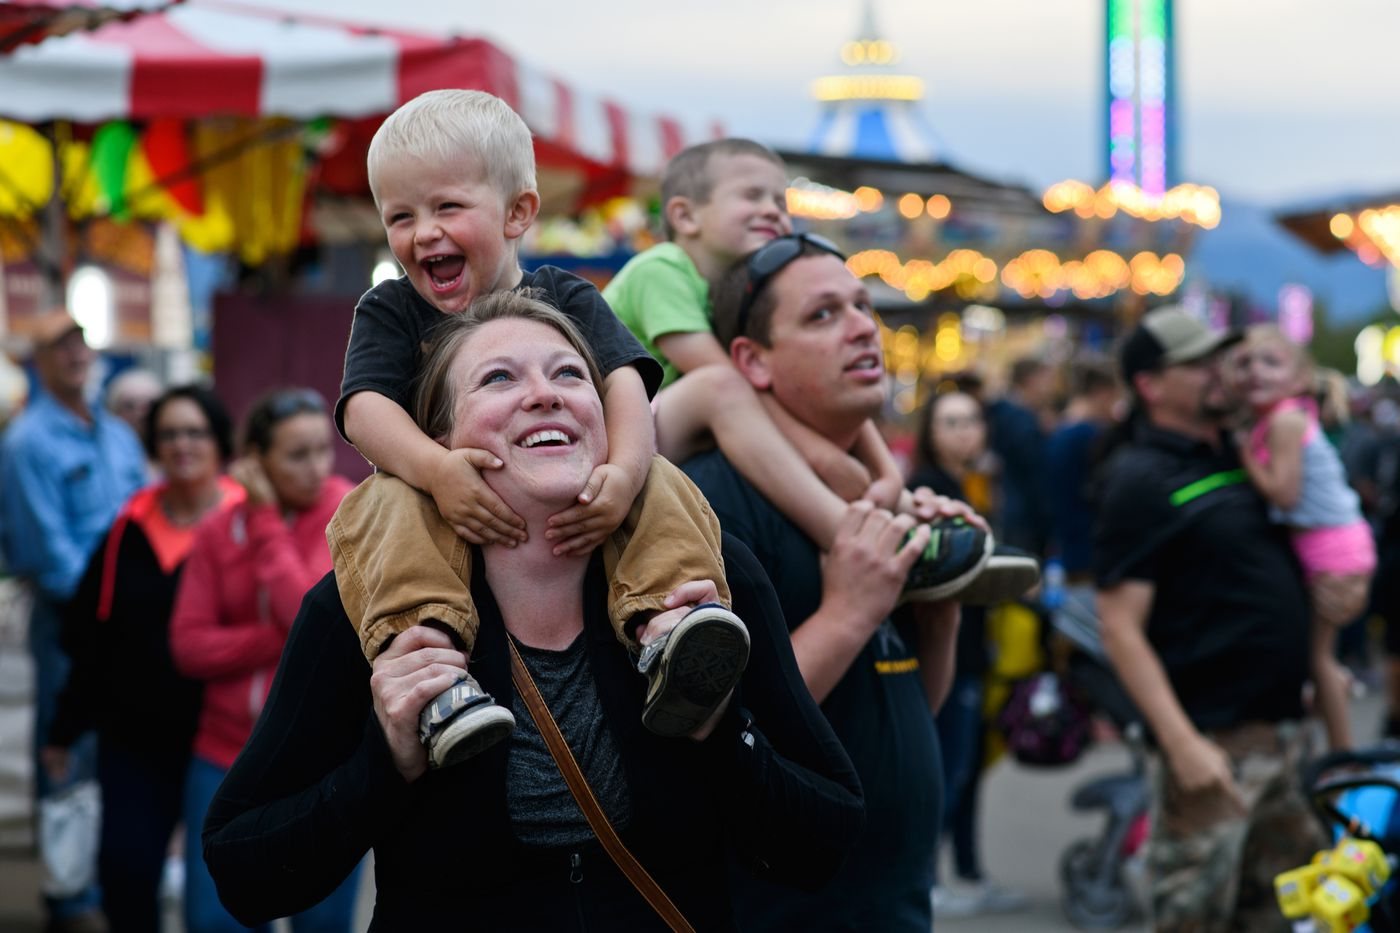 Lindsey Noll holds Wyatt Noll, 2, as they watch riders on the 1001 Nachts ride. David Noll holds Sawyer Noll, 5, at right. (Marc Lester / ADN)